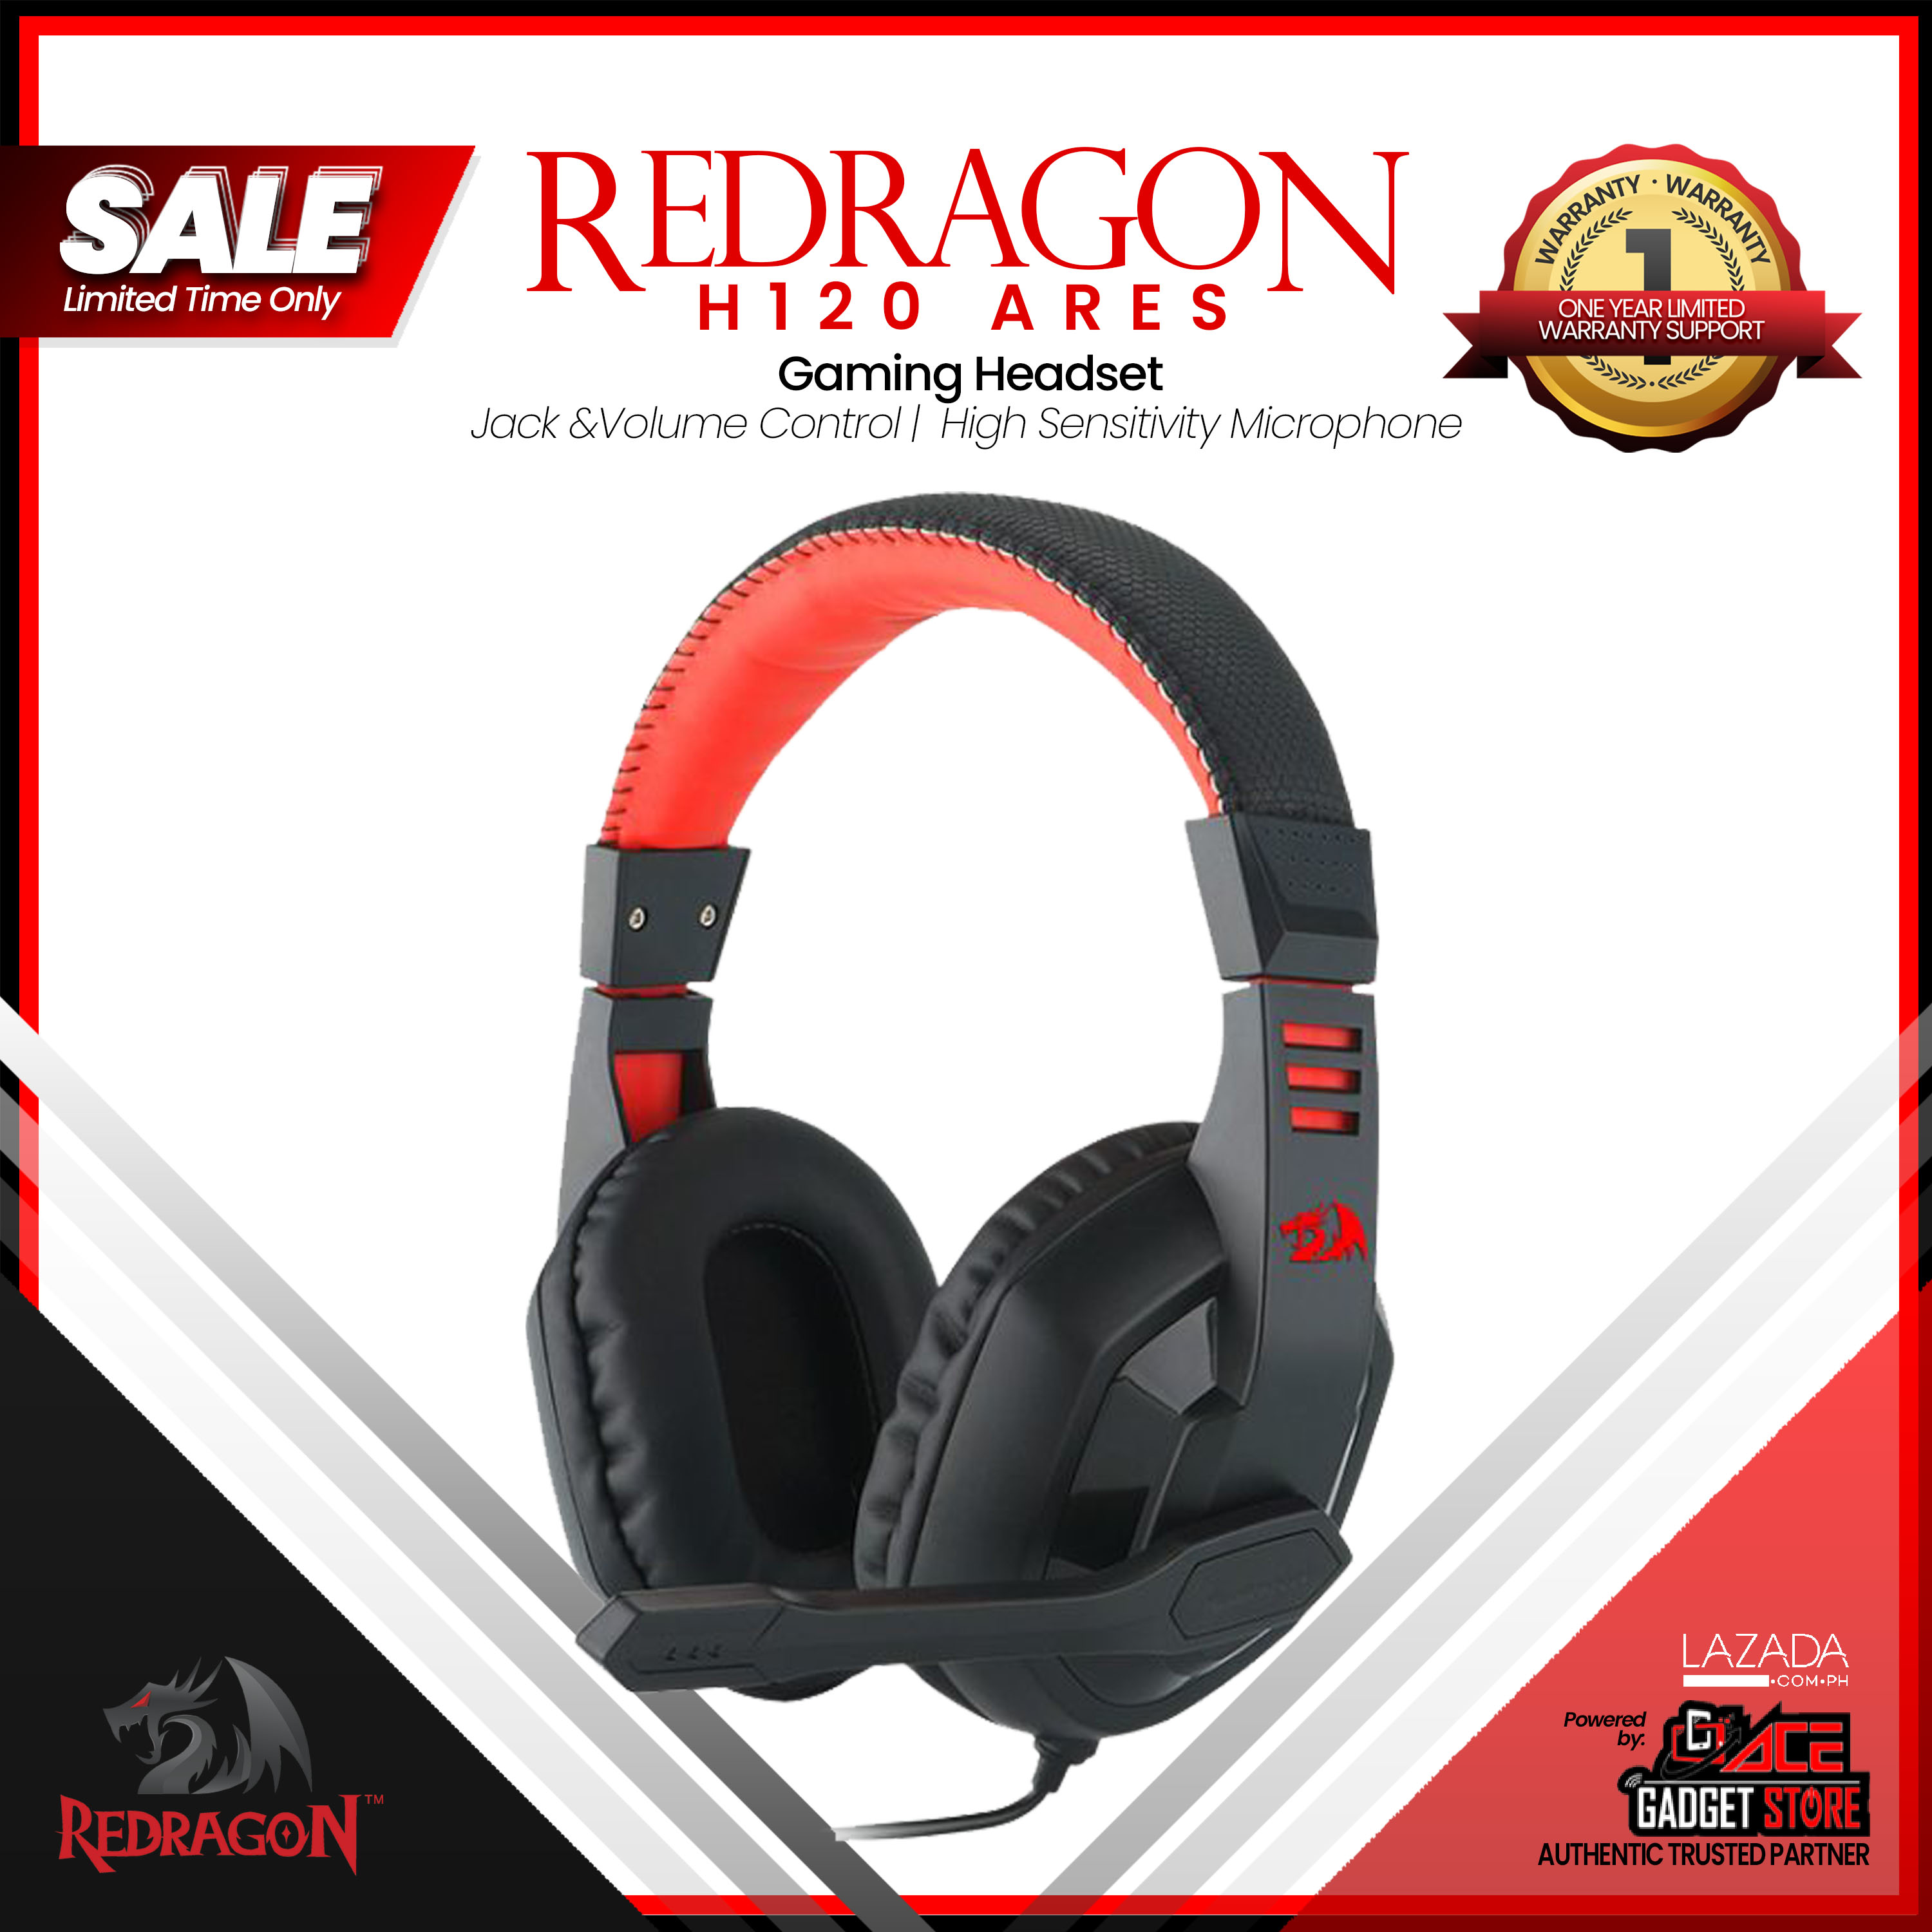 Redragon H120 Ares Gaming Headset, Wired Over Ear PC Gaming Headphones with  Mic Built-in Noise Reduction, for PC, Laptop, Tablet, PS4, Xbox One